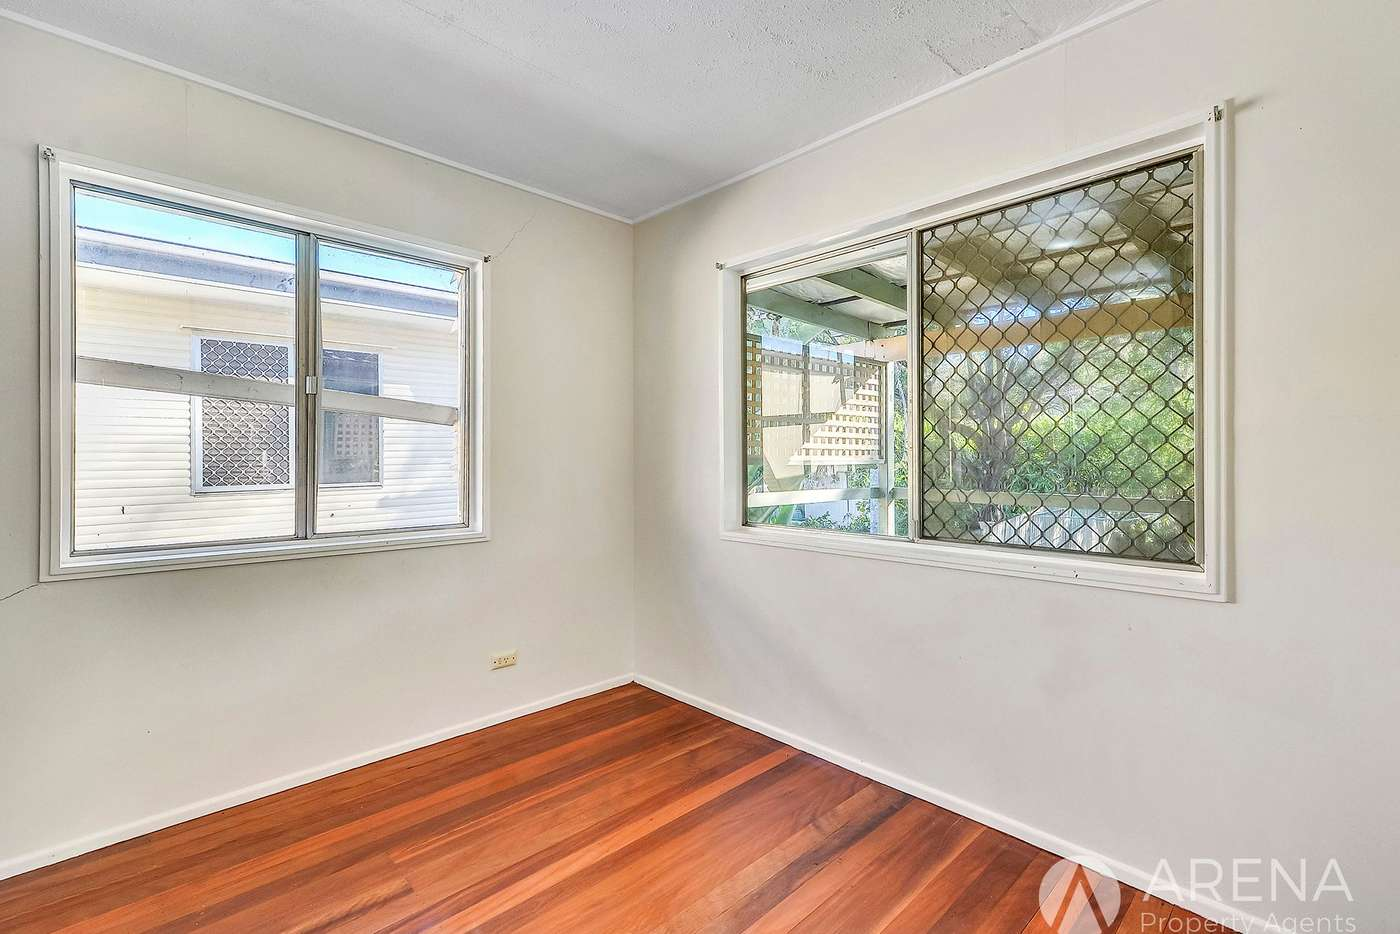 Sixth view of Homely house listing, 99 Saint Andrew Street, Kuraby QLD 4112